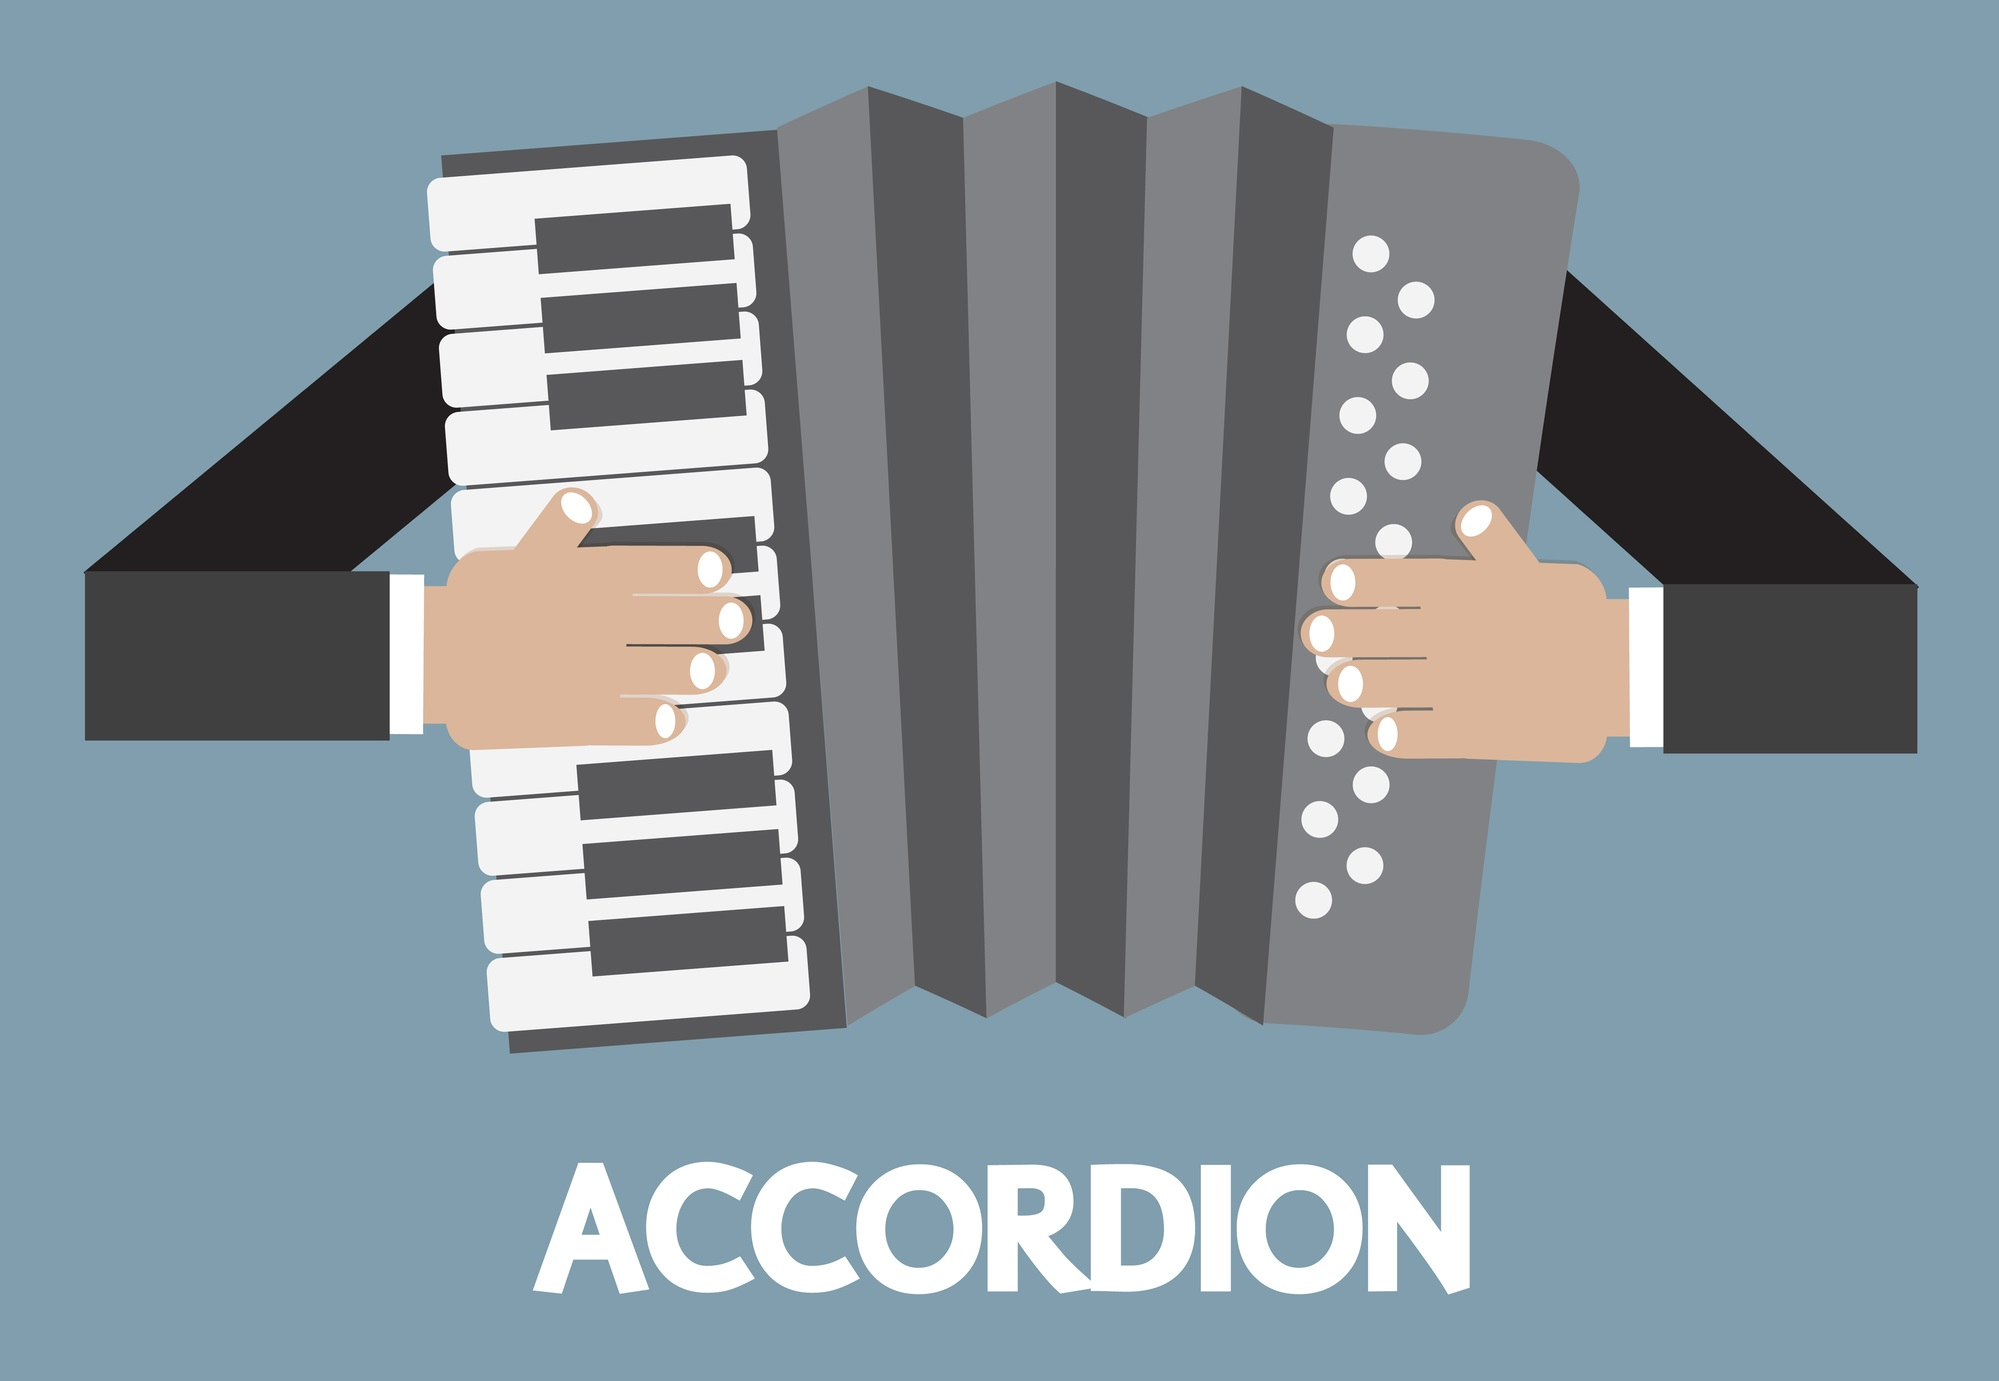 jquery ui accordion アコーディオン